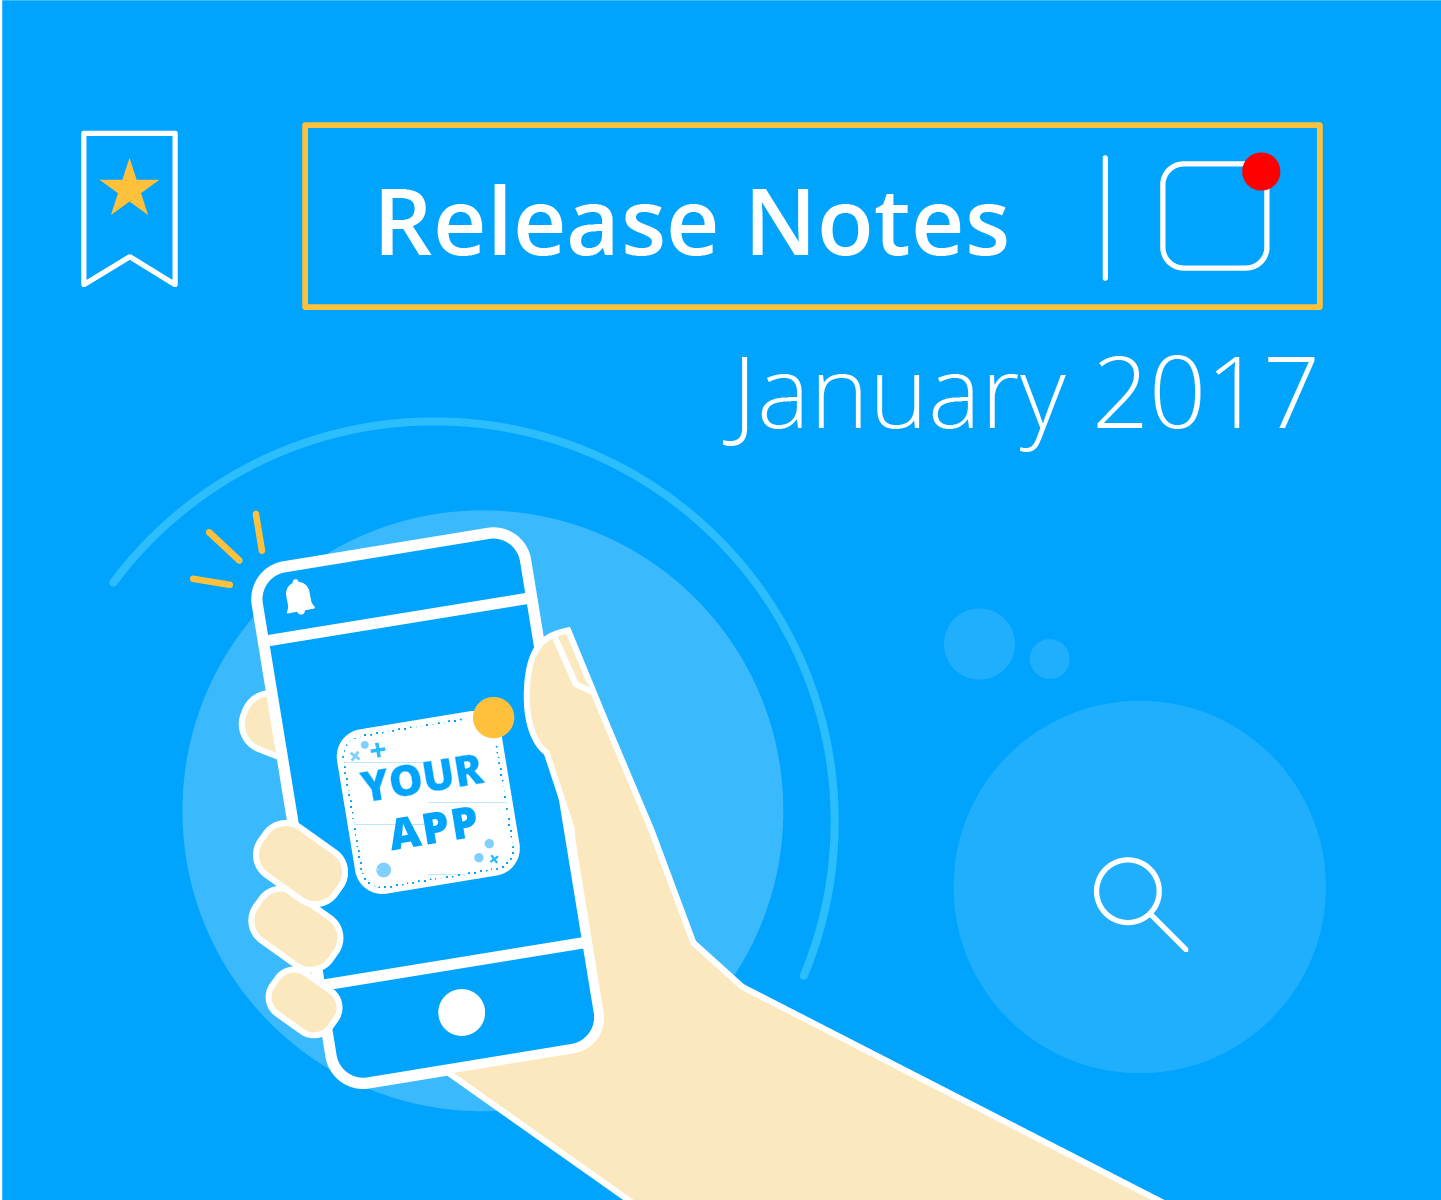 January Update: Comment Notifications Let Employees Engage With Each Other